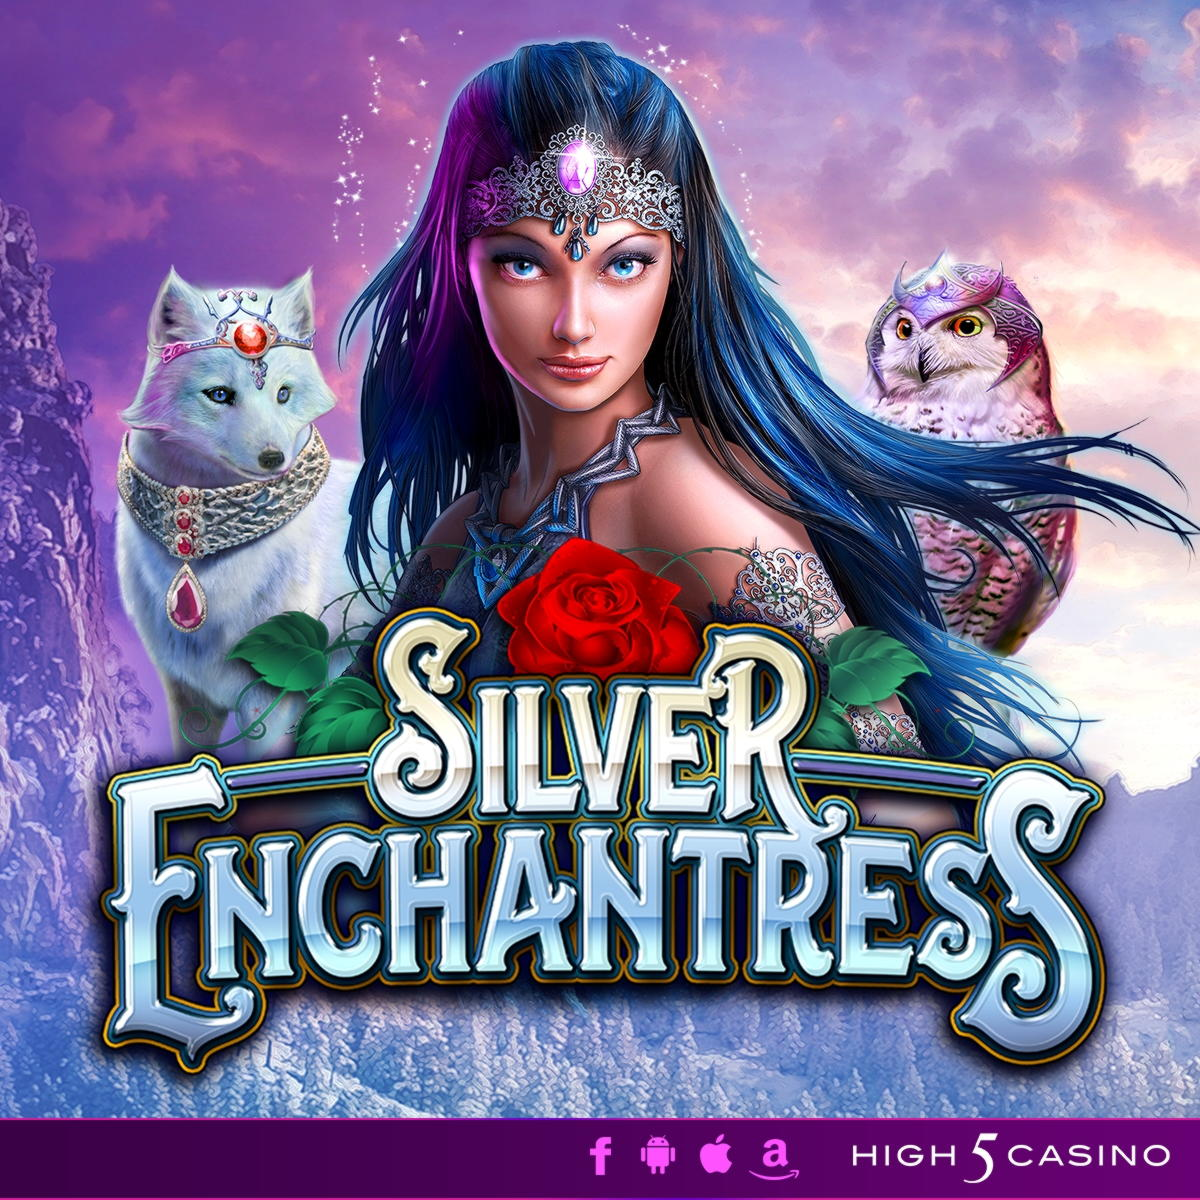 £85 Free chip at Wild Slots Casino